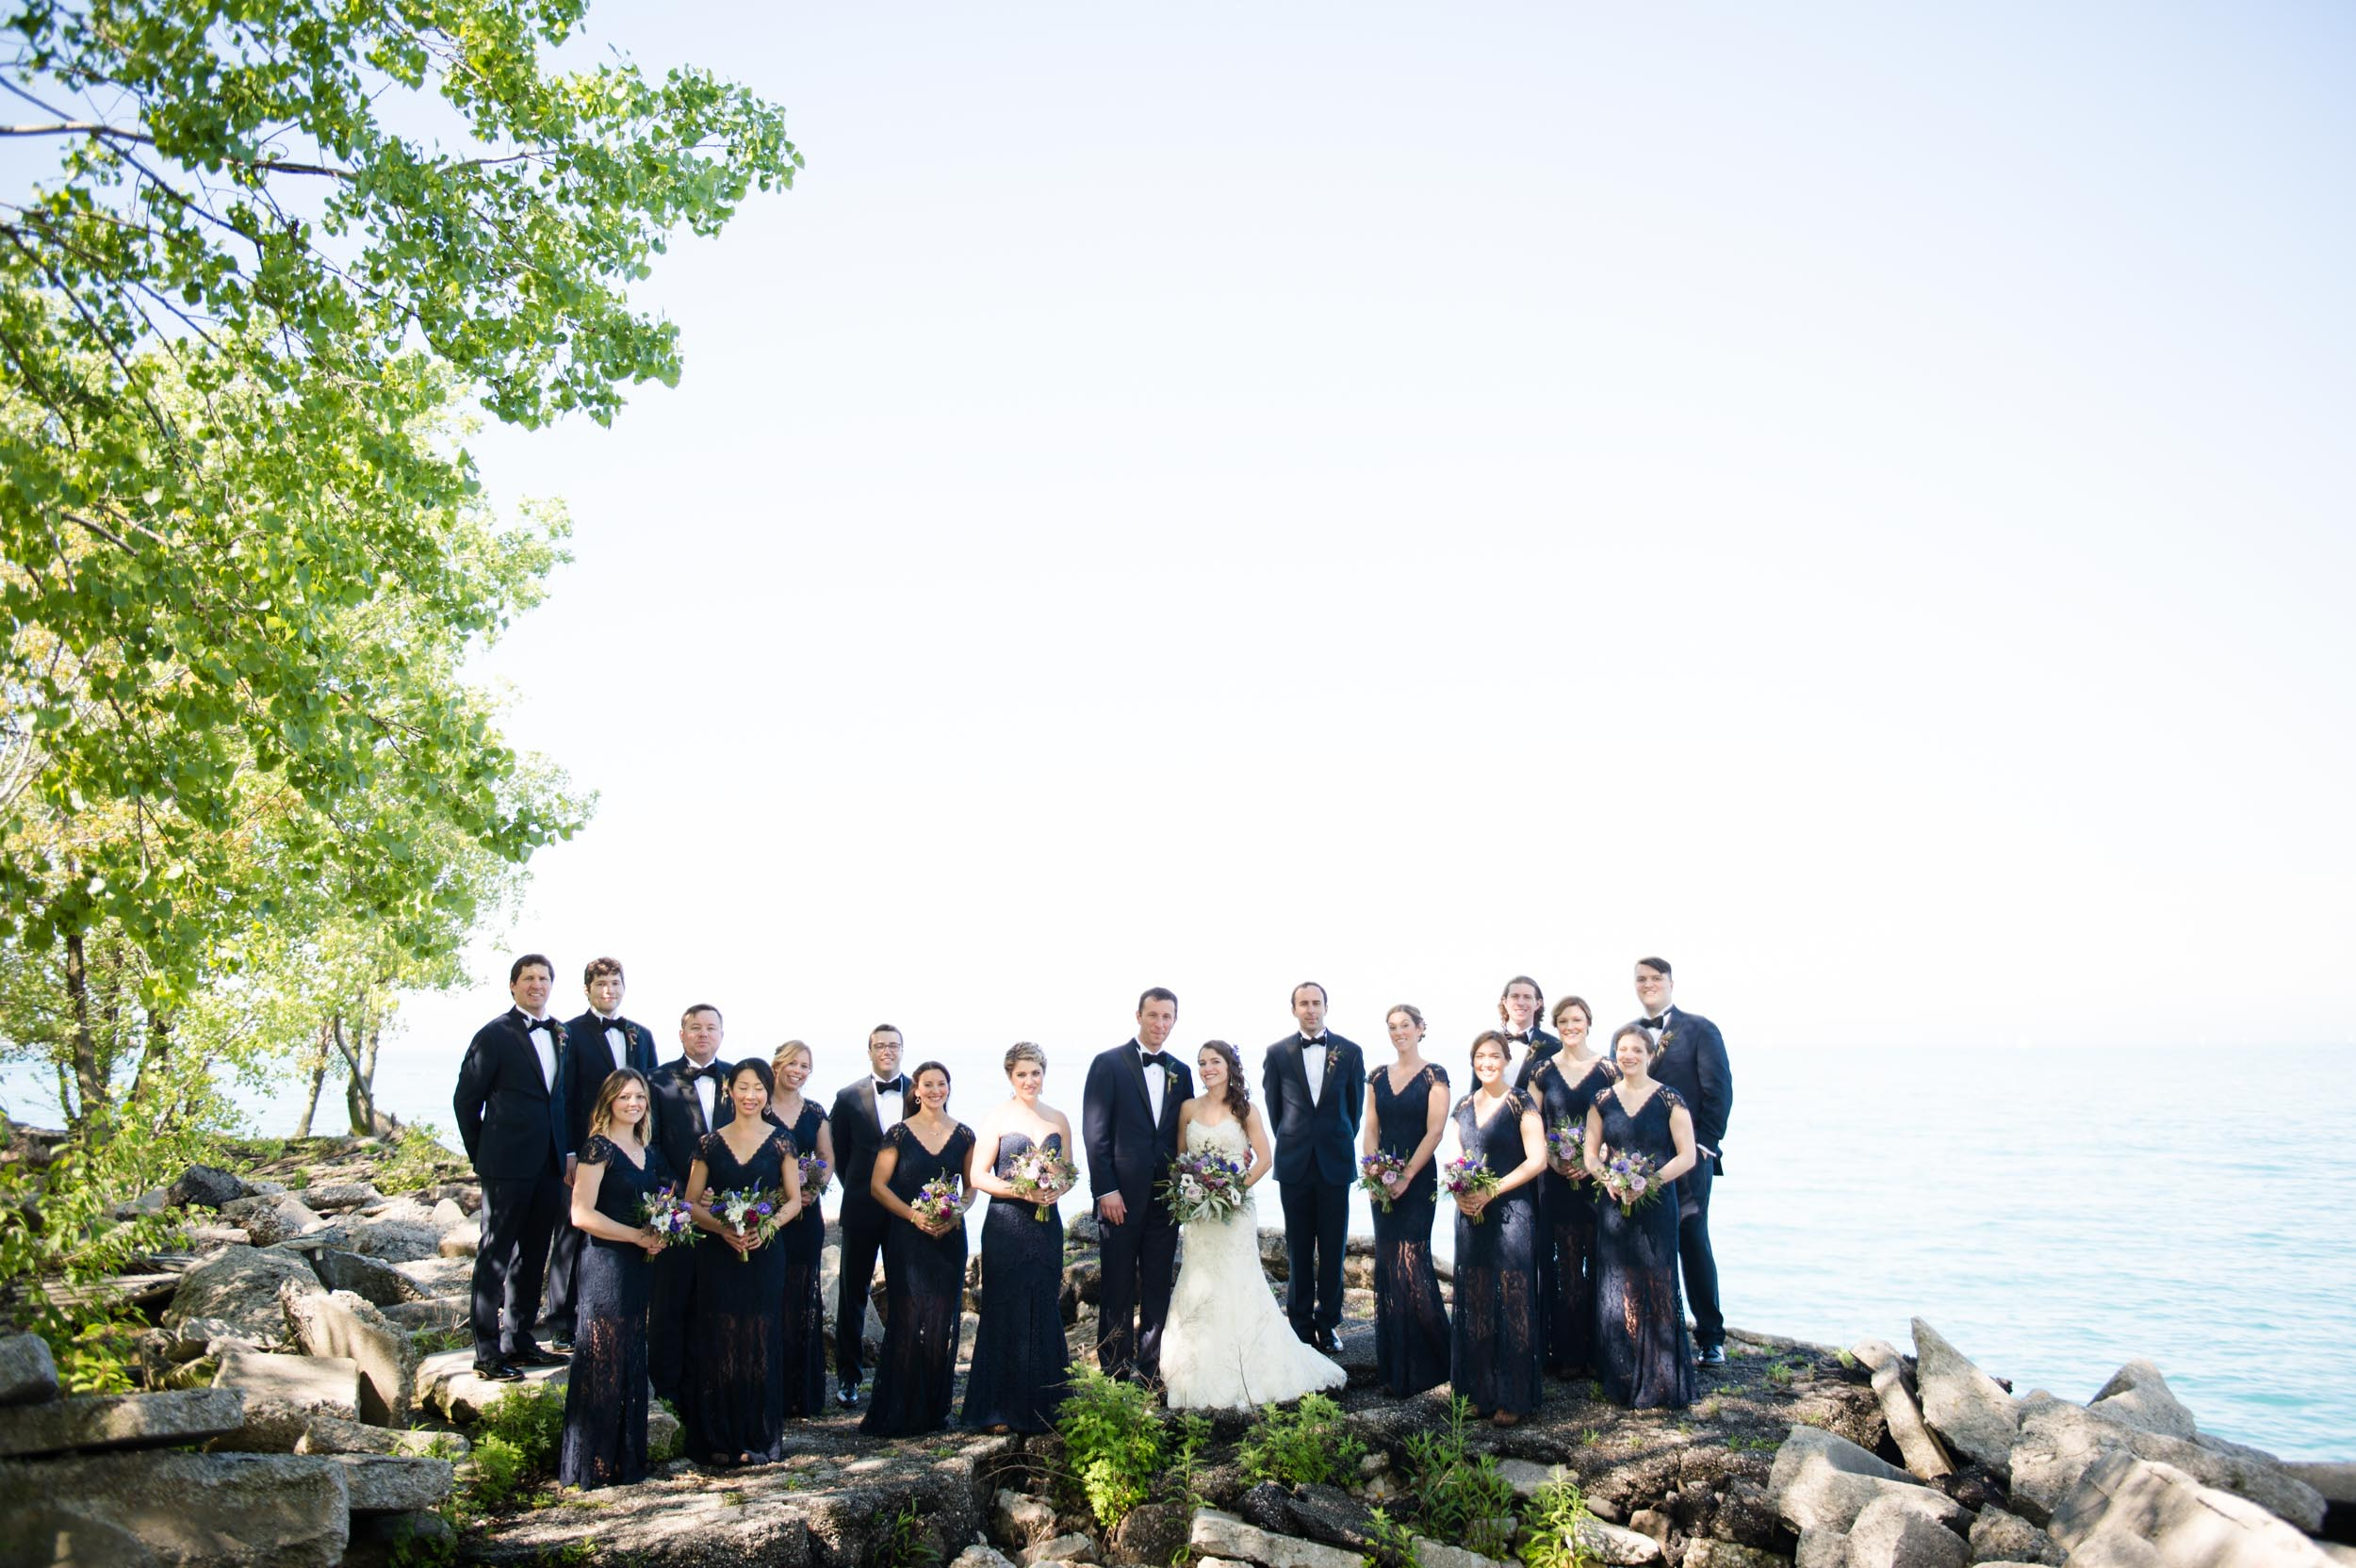 Wedding party photos on Northerly Island, Chicago